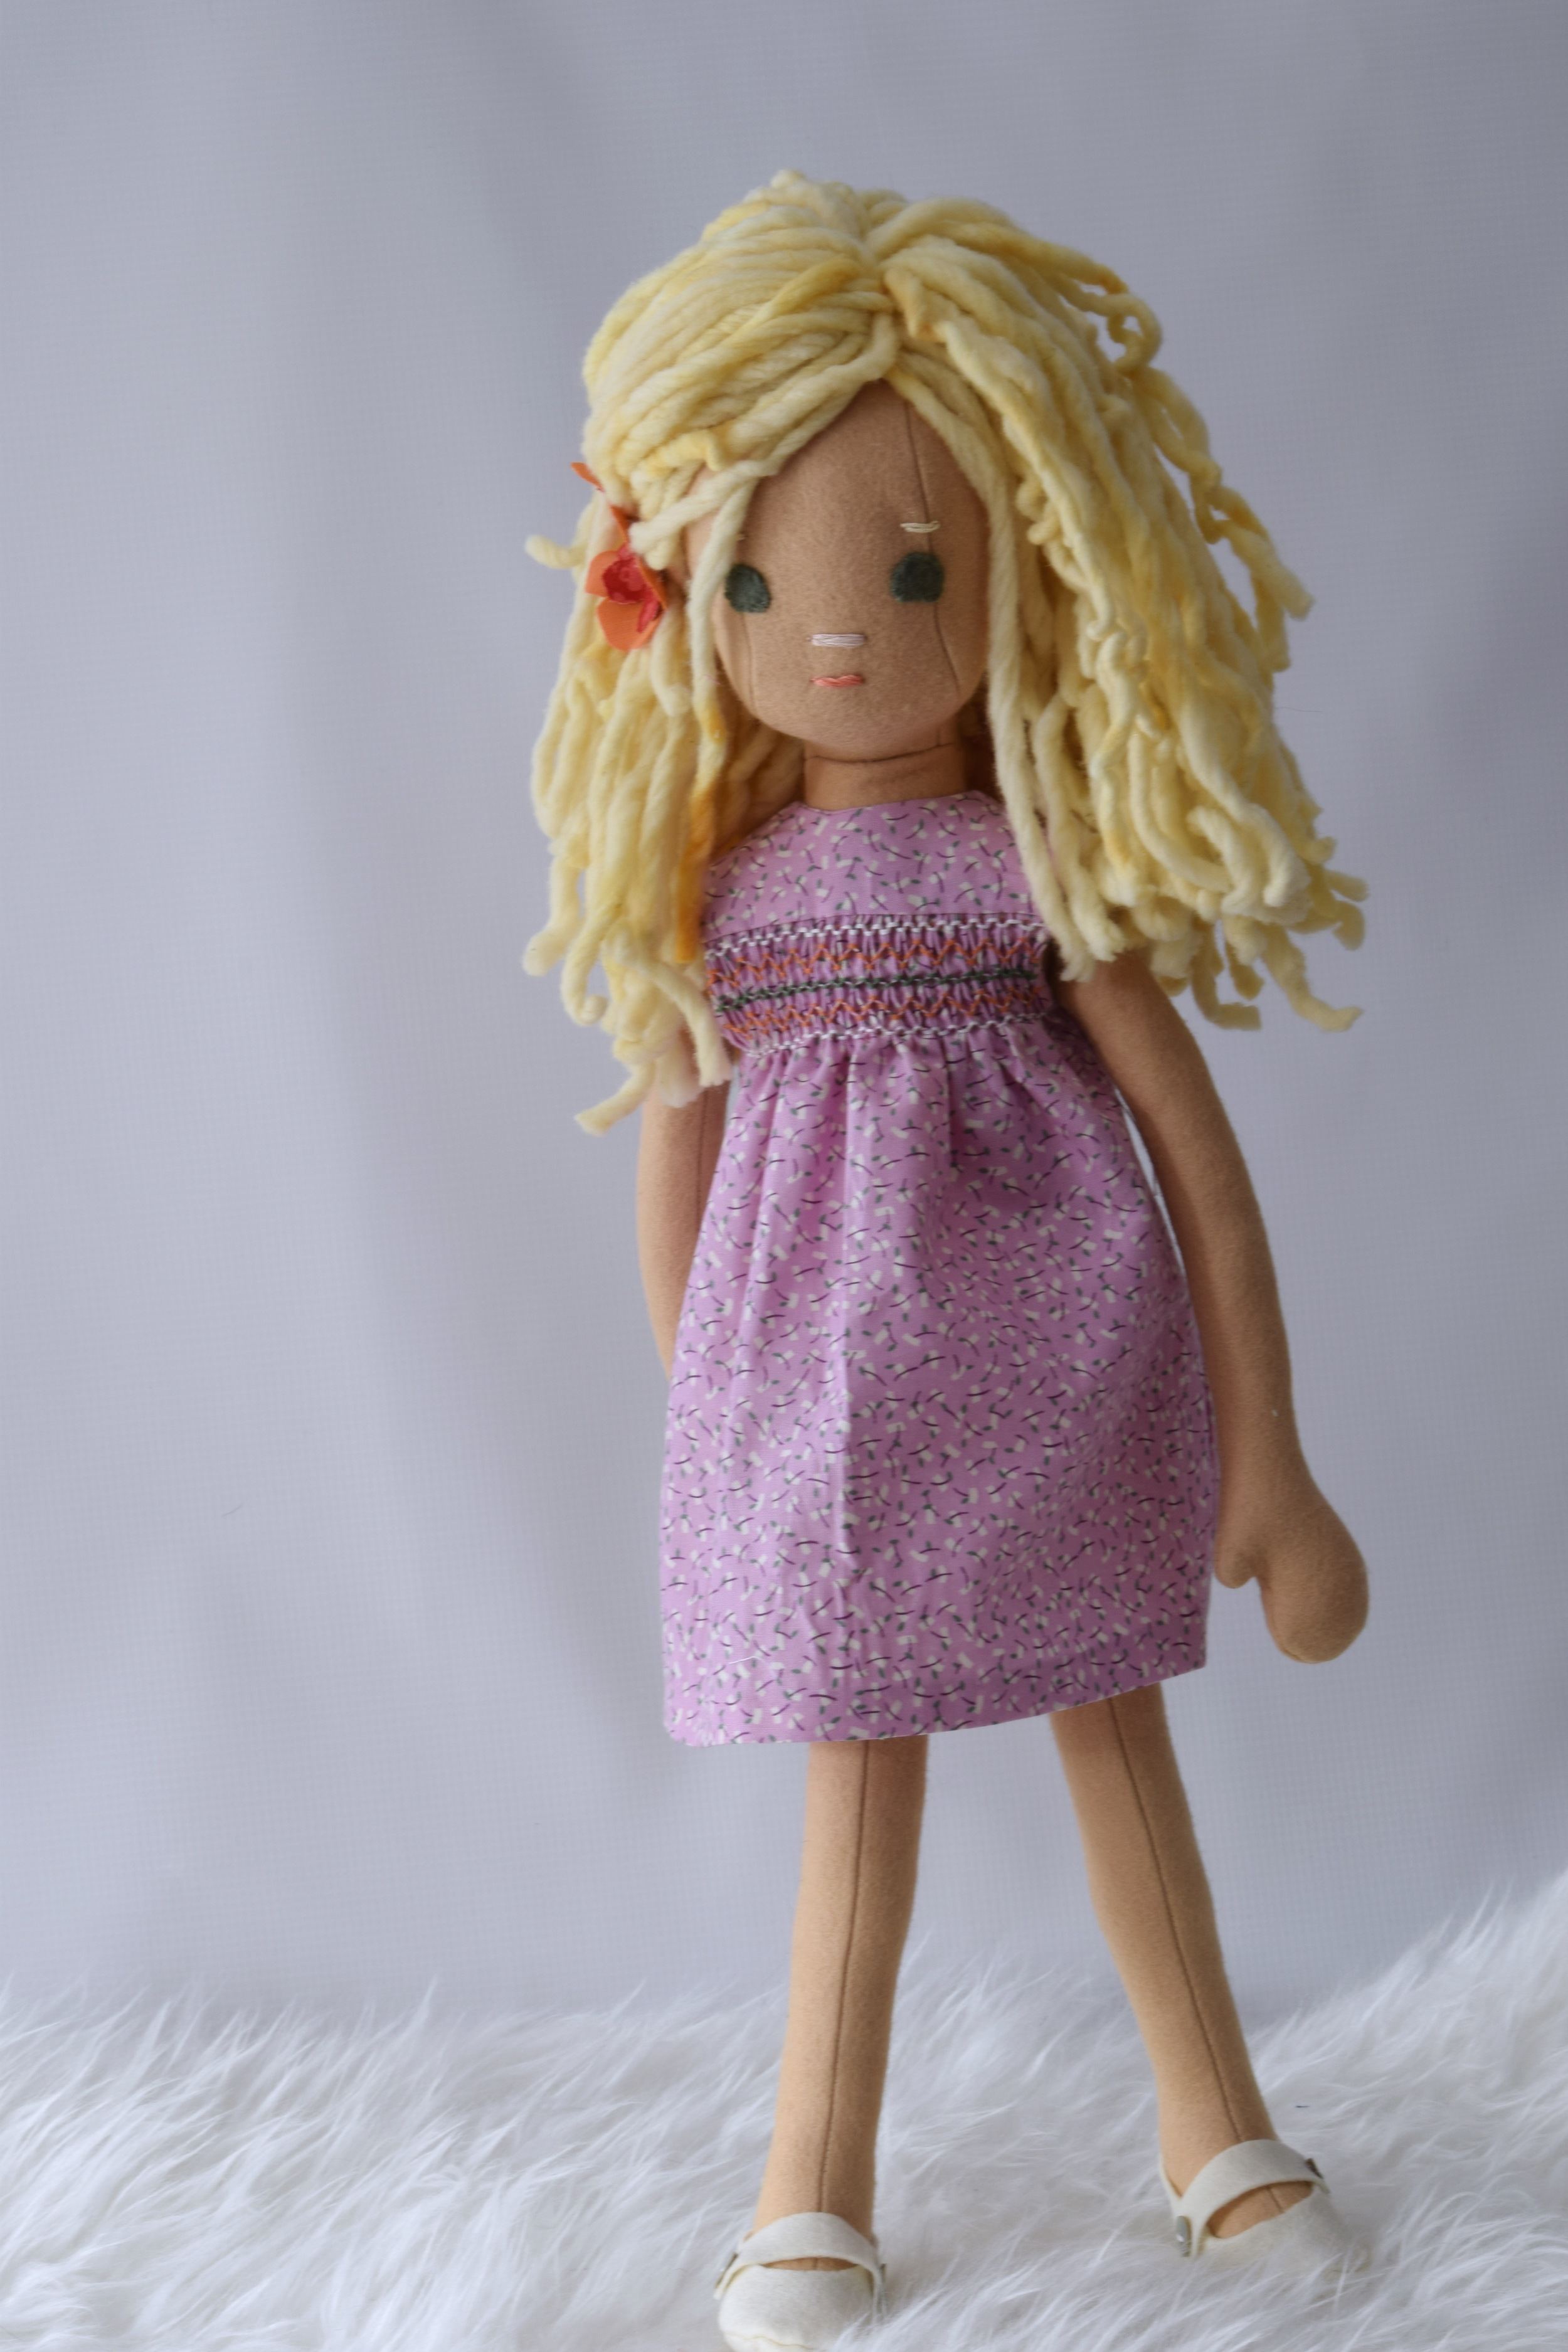 Handmade doll with smocked dress